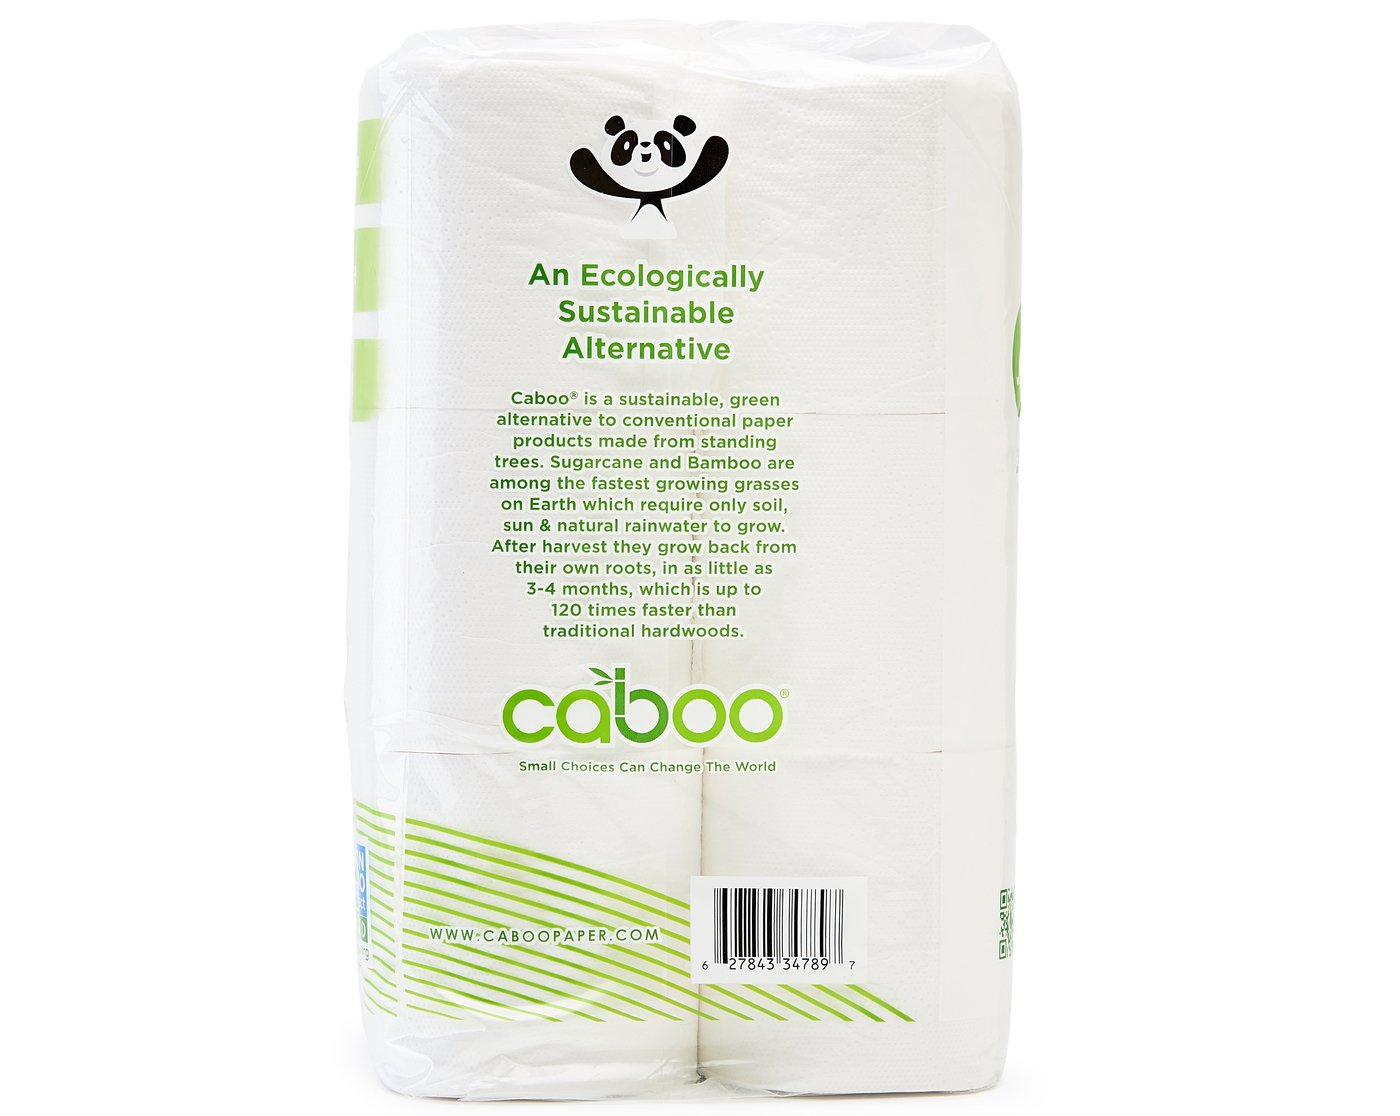 Amazon.com: Caboo Tree Free Bamboo Toilet Paper with Septic Safe ...